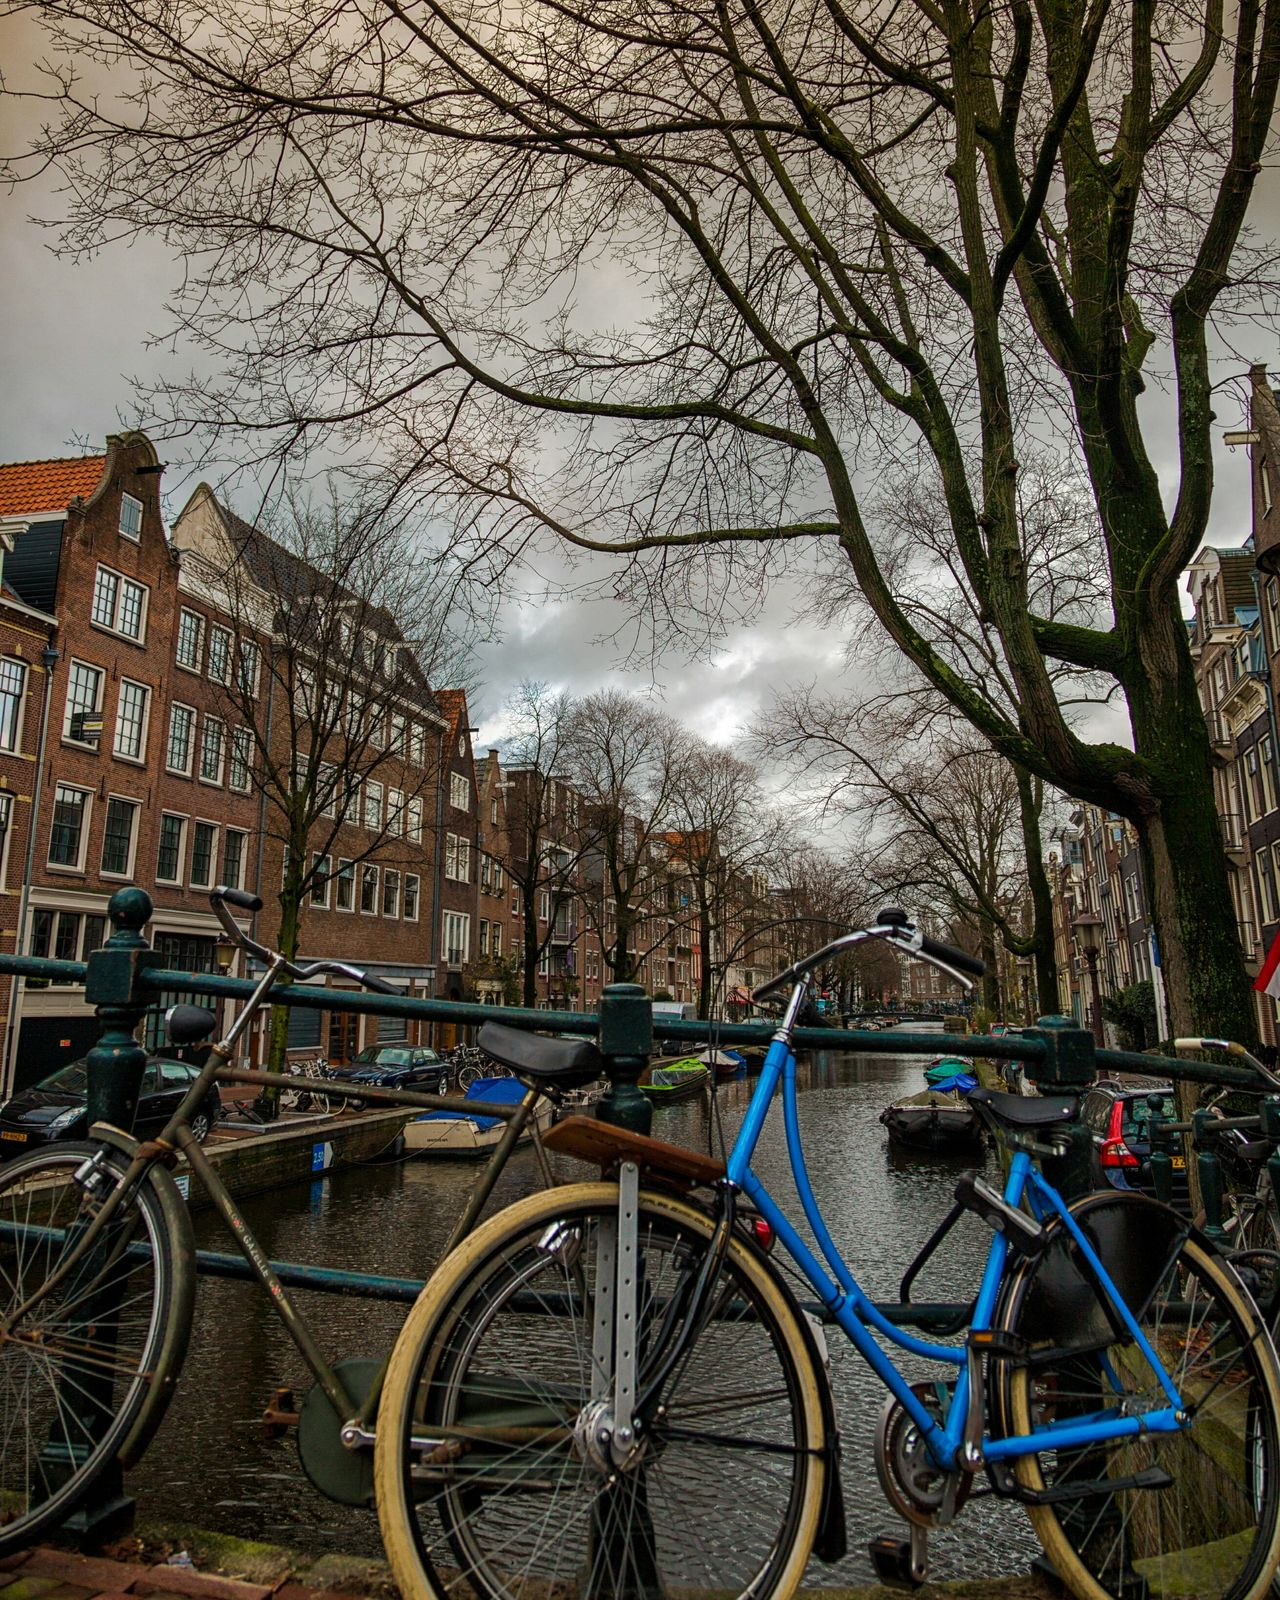 Bicycle Mode Of Transport Transportation No People Land Vehicle Sky Cityscape Bicycle Rack Nature Tree Photography Travel Destinations Film Photography Cinema In Your Life AdobeLightroom Amsterdam.nl Amsterdam Canon5dmarkiii Amsterdam Canal Amsterdamcity Canon5Dmk3 Nature Longexposure_shots Canon Camera Vacations